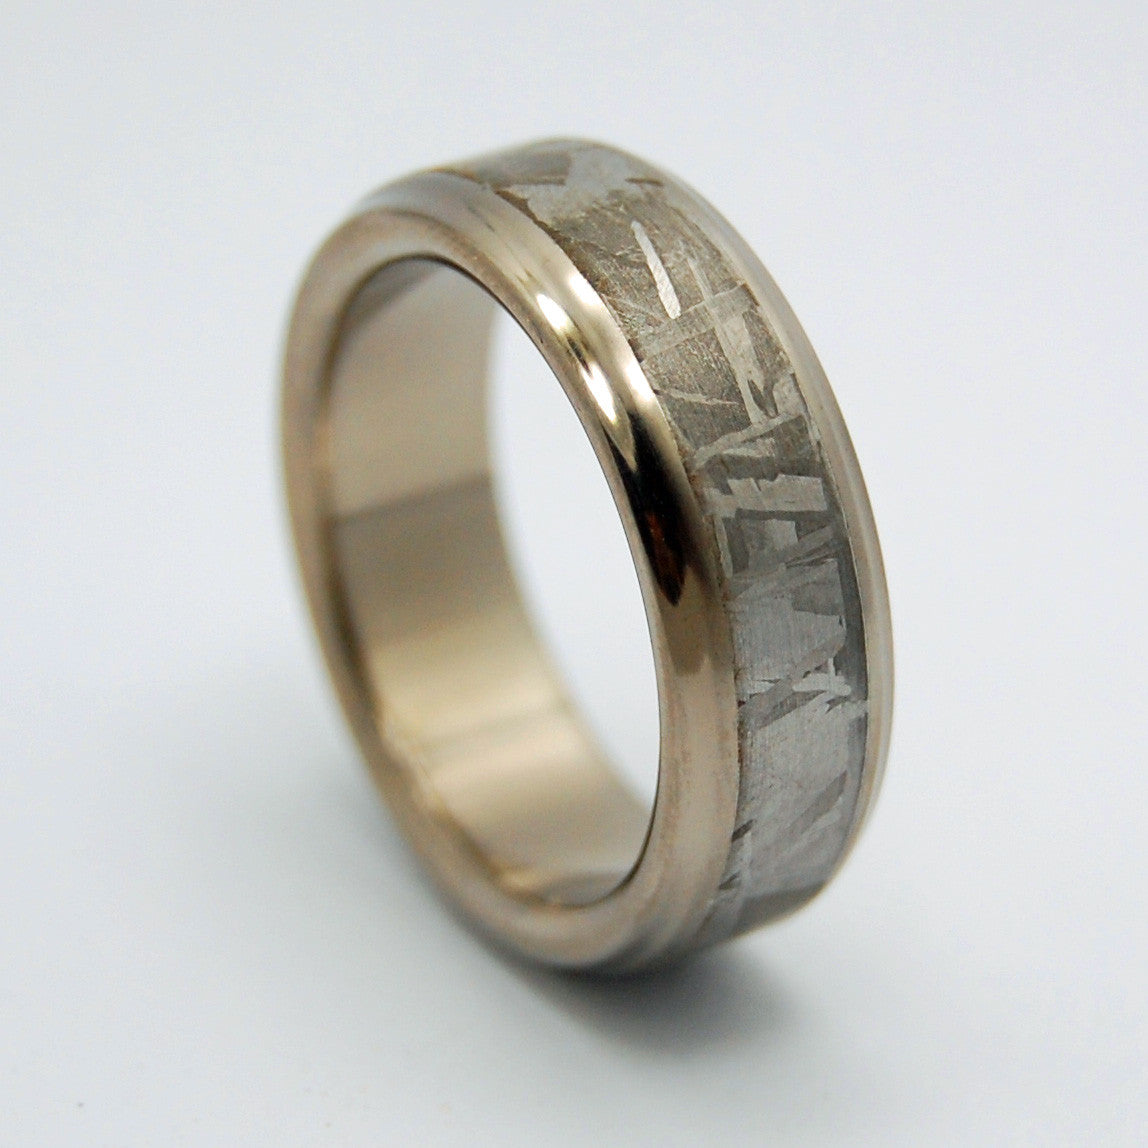 falling star meteorite wedding band - Meteorite Wedding Ring